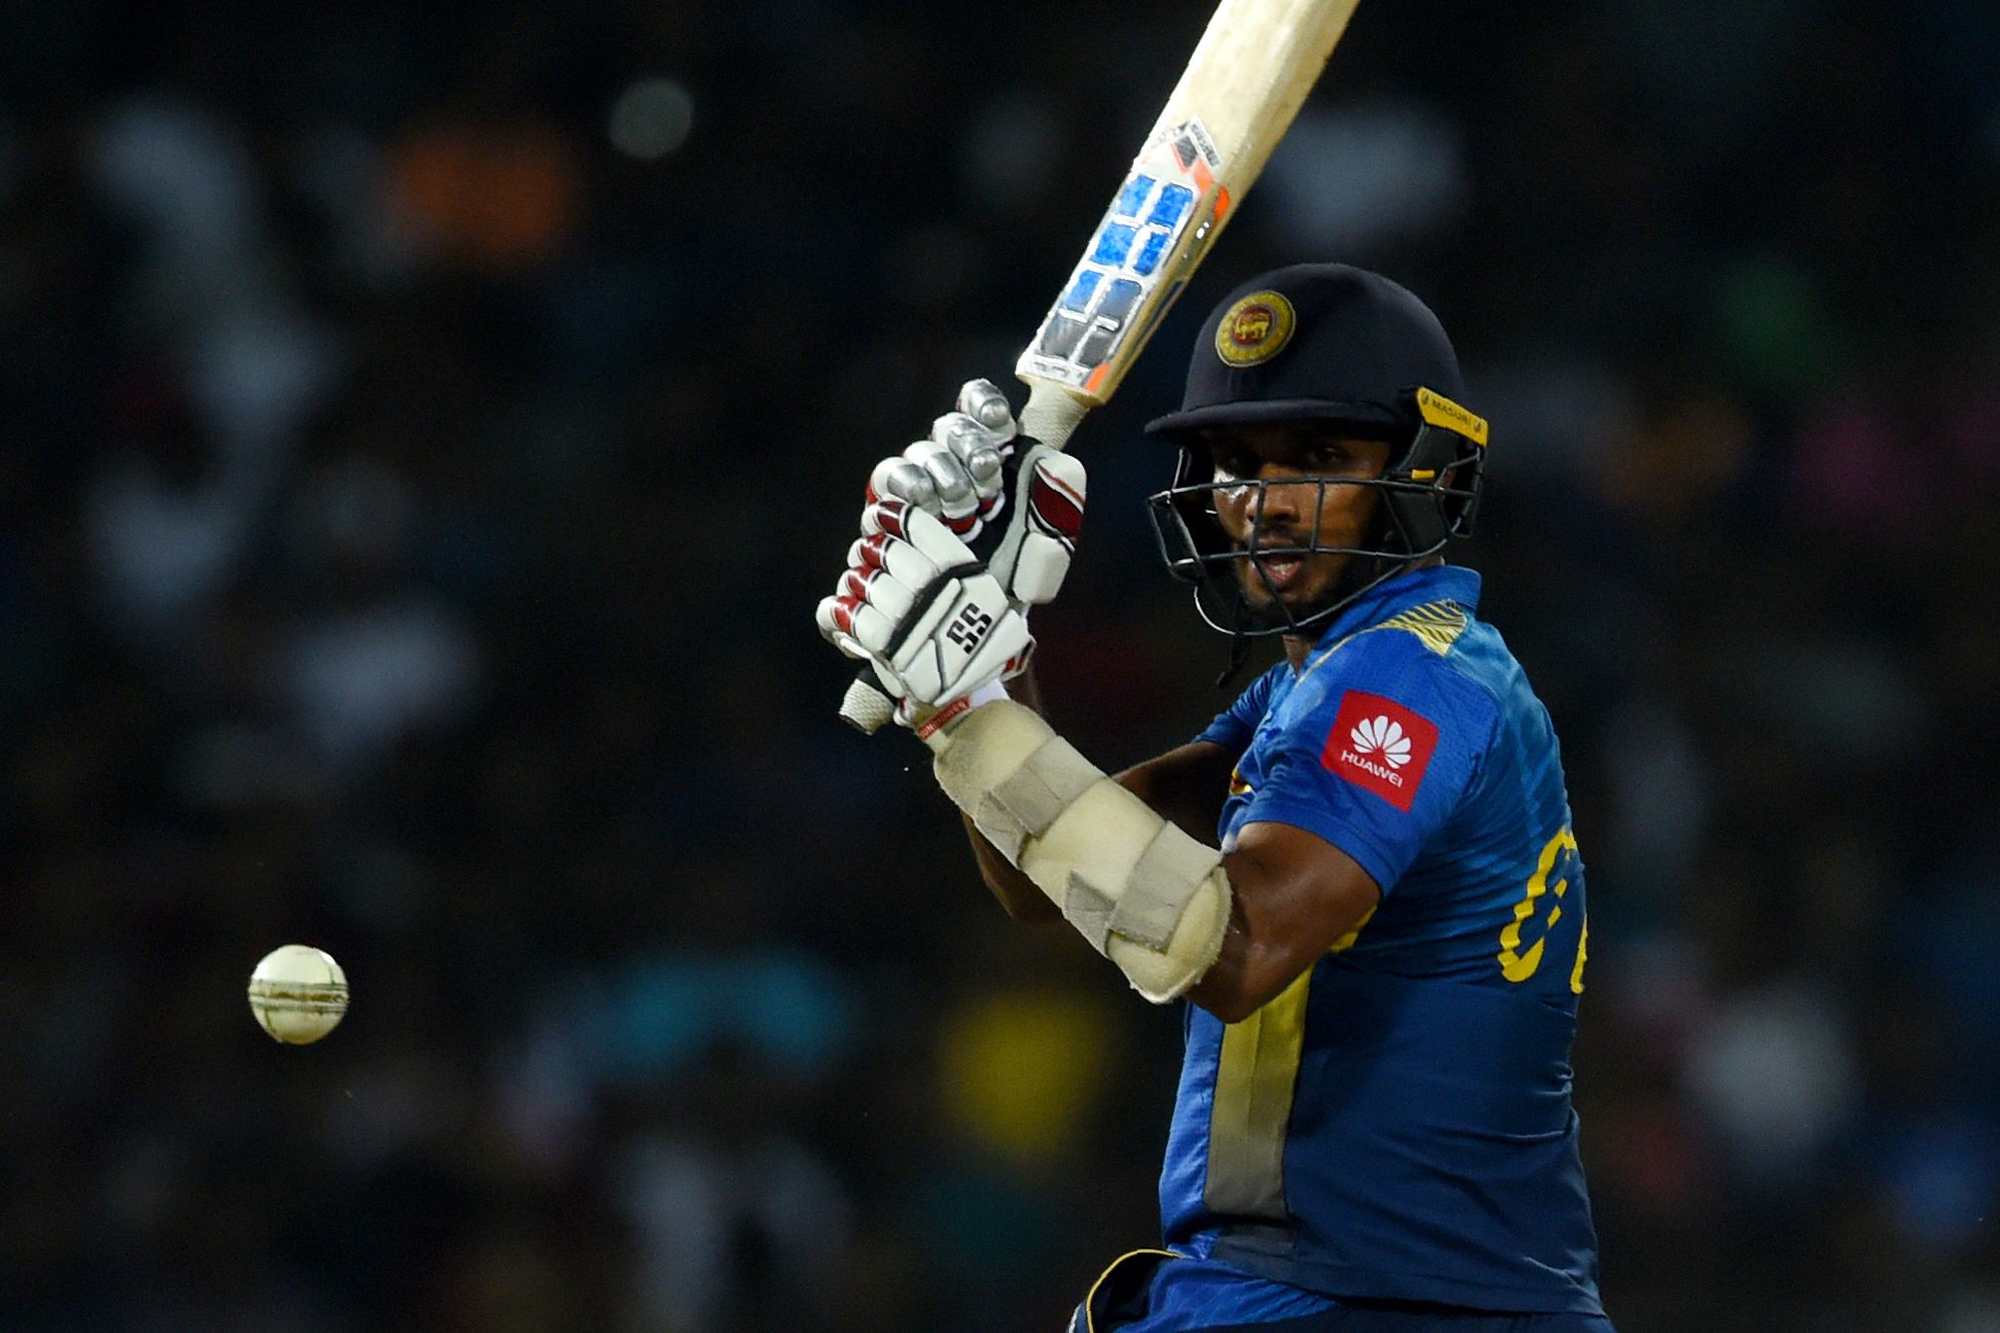 Sri Lankan cricketer Dasun Shanaka is dismissed by England's bowler Liam Plunkett (not pictured) during the International Twenty20 cricket match between Sri Lanka and England at the R Peremadasa Stadium in Colombo on October 27, 2018. (Photo by ISHARA S.